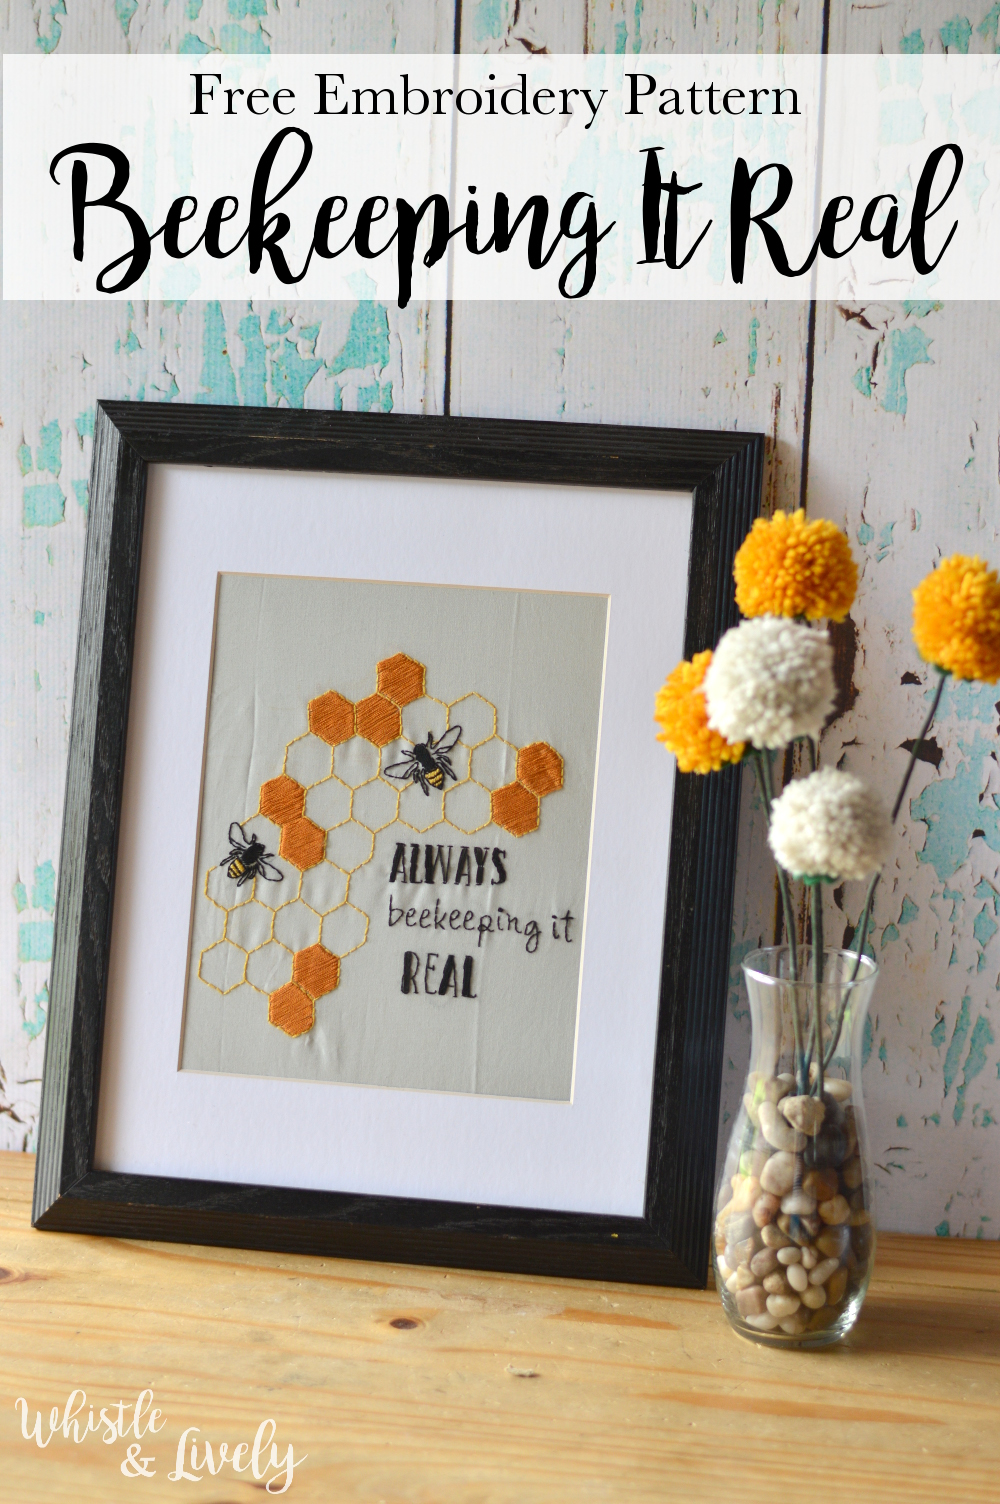 FREE Embroidery Pattern: Always Beekeeping it Real | Make this simple bee and honeycomb embroidery art for the bee-lover in your life!